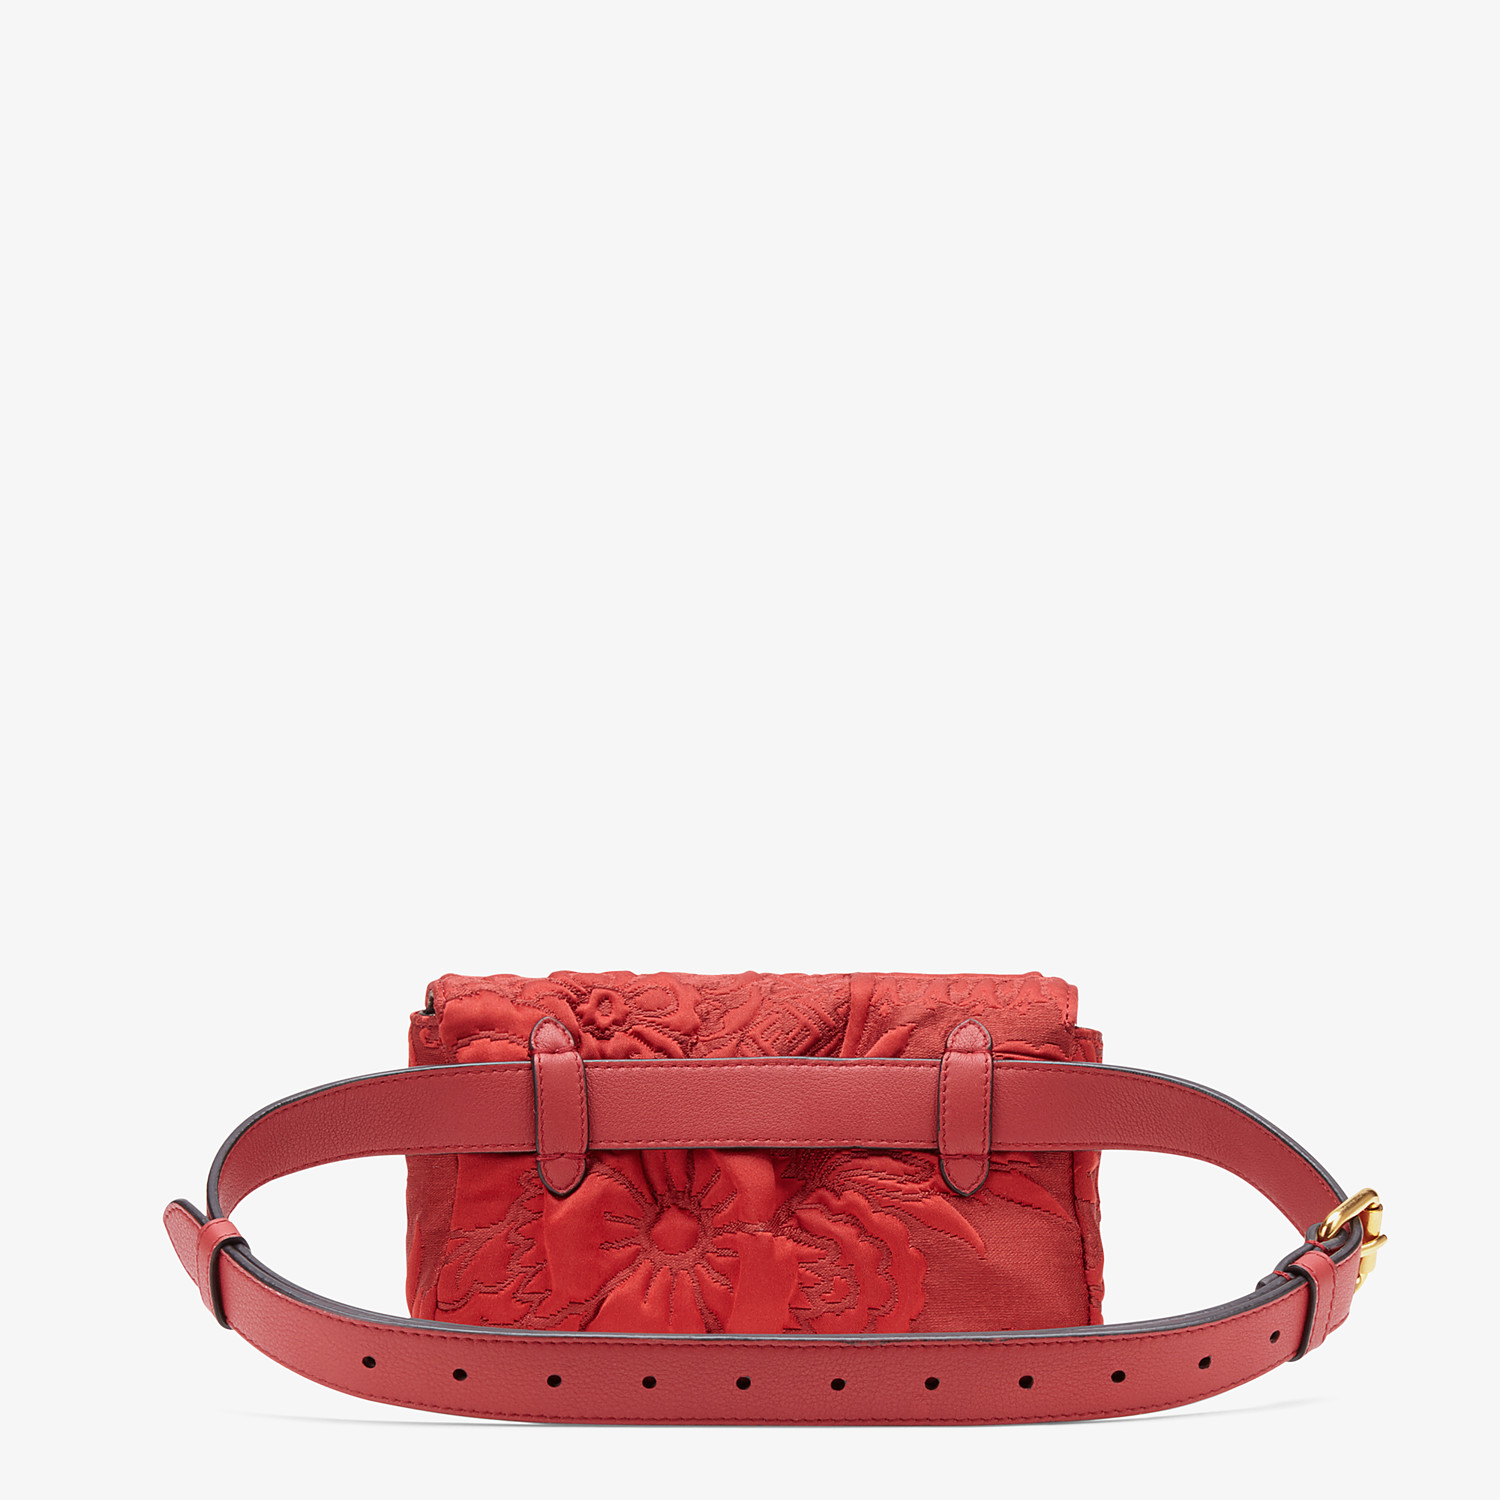 FENDI BELT BAG - Red fabric minibag - view 4 detail